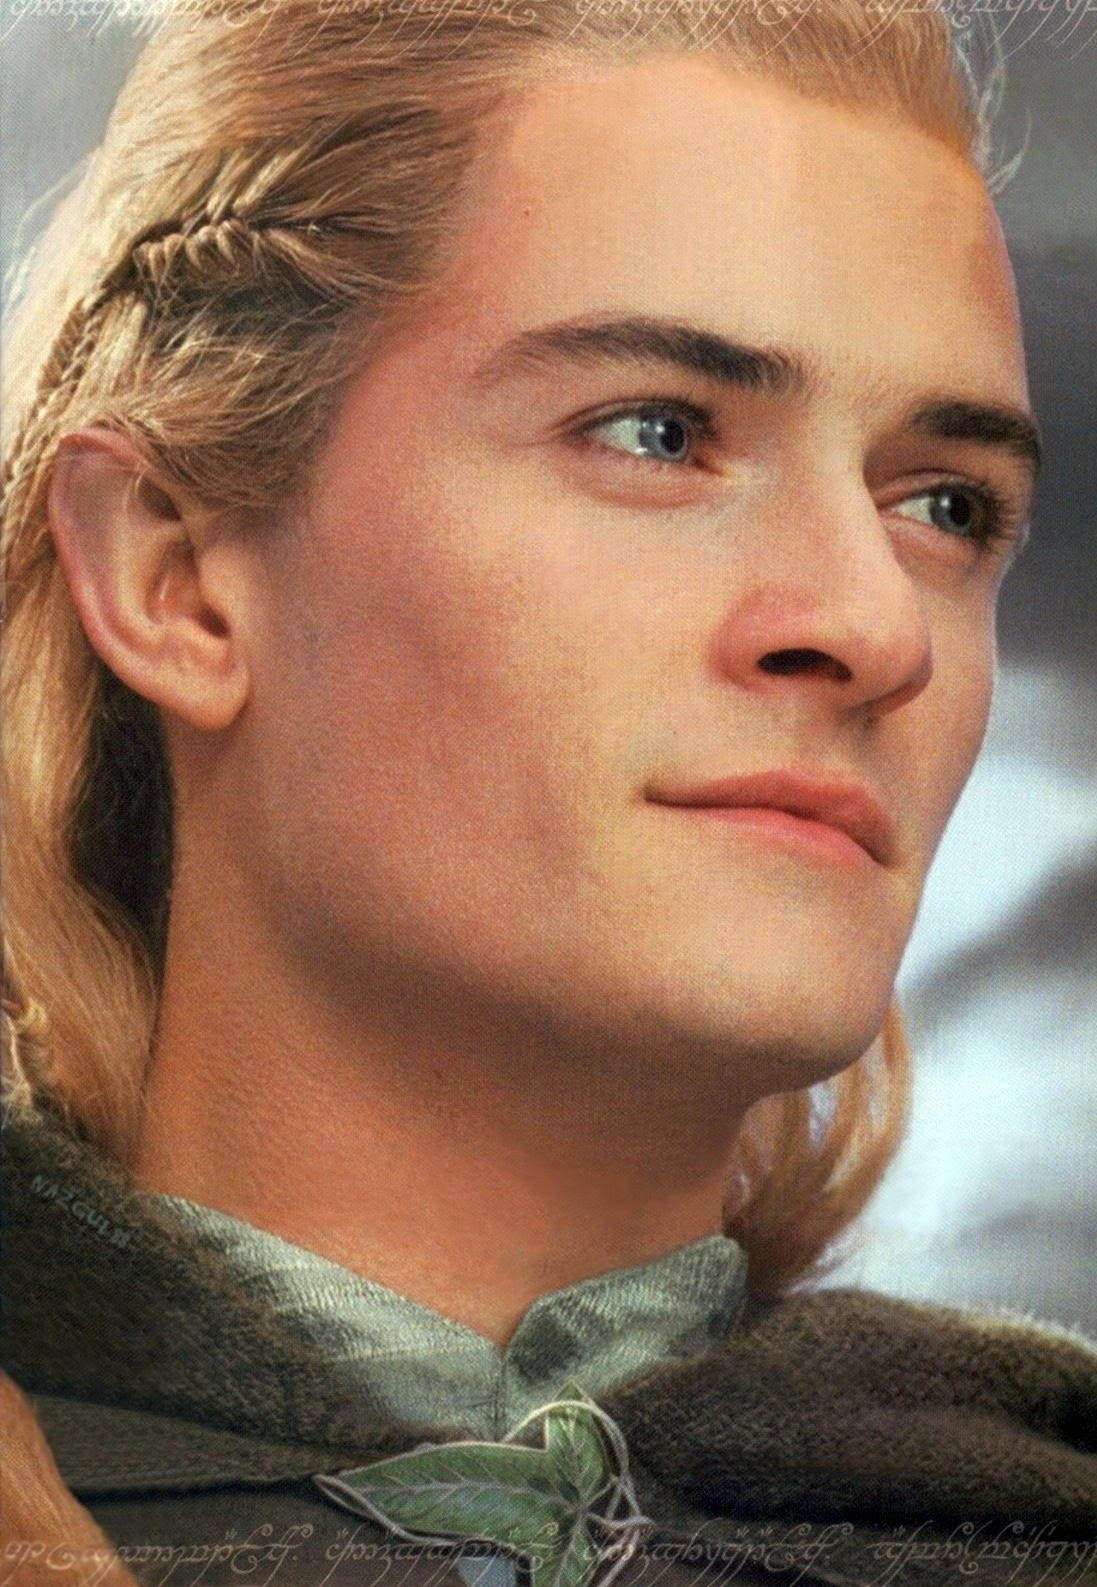 Legolas The Lord Of The Rings Legolas Lord Of The Rings